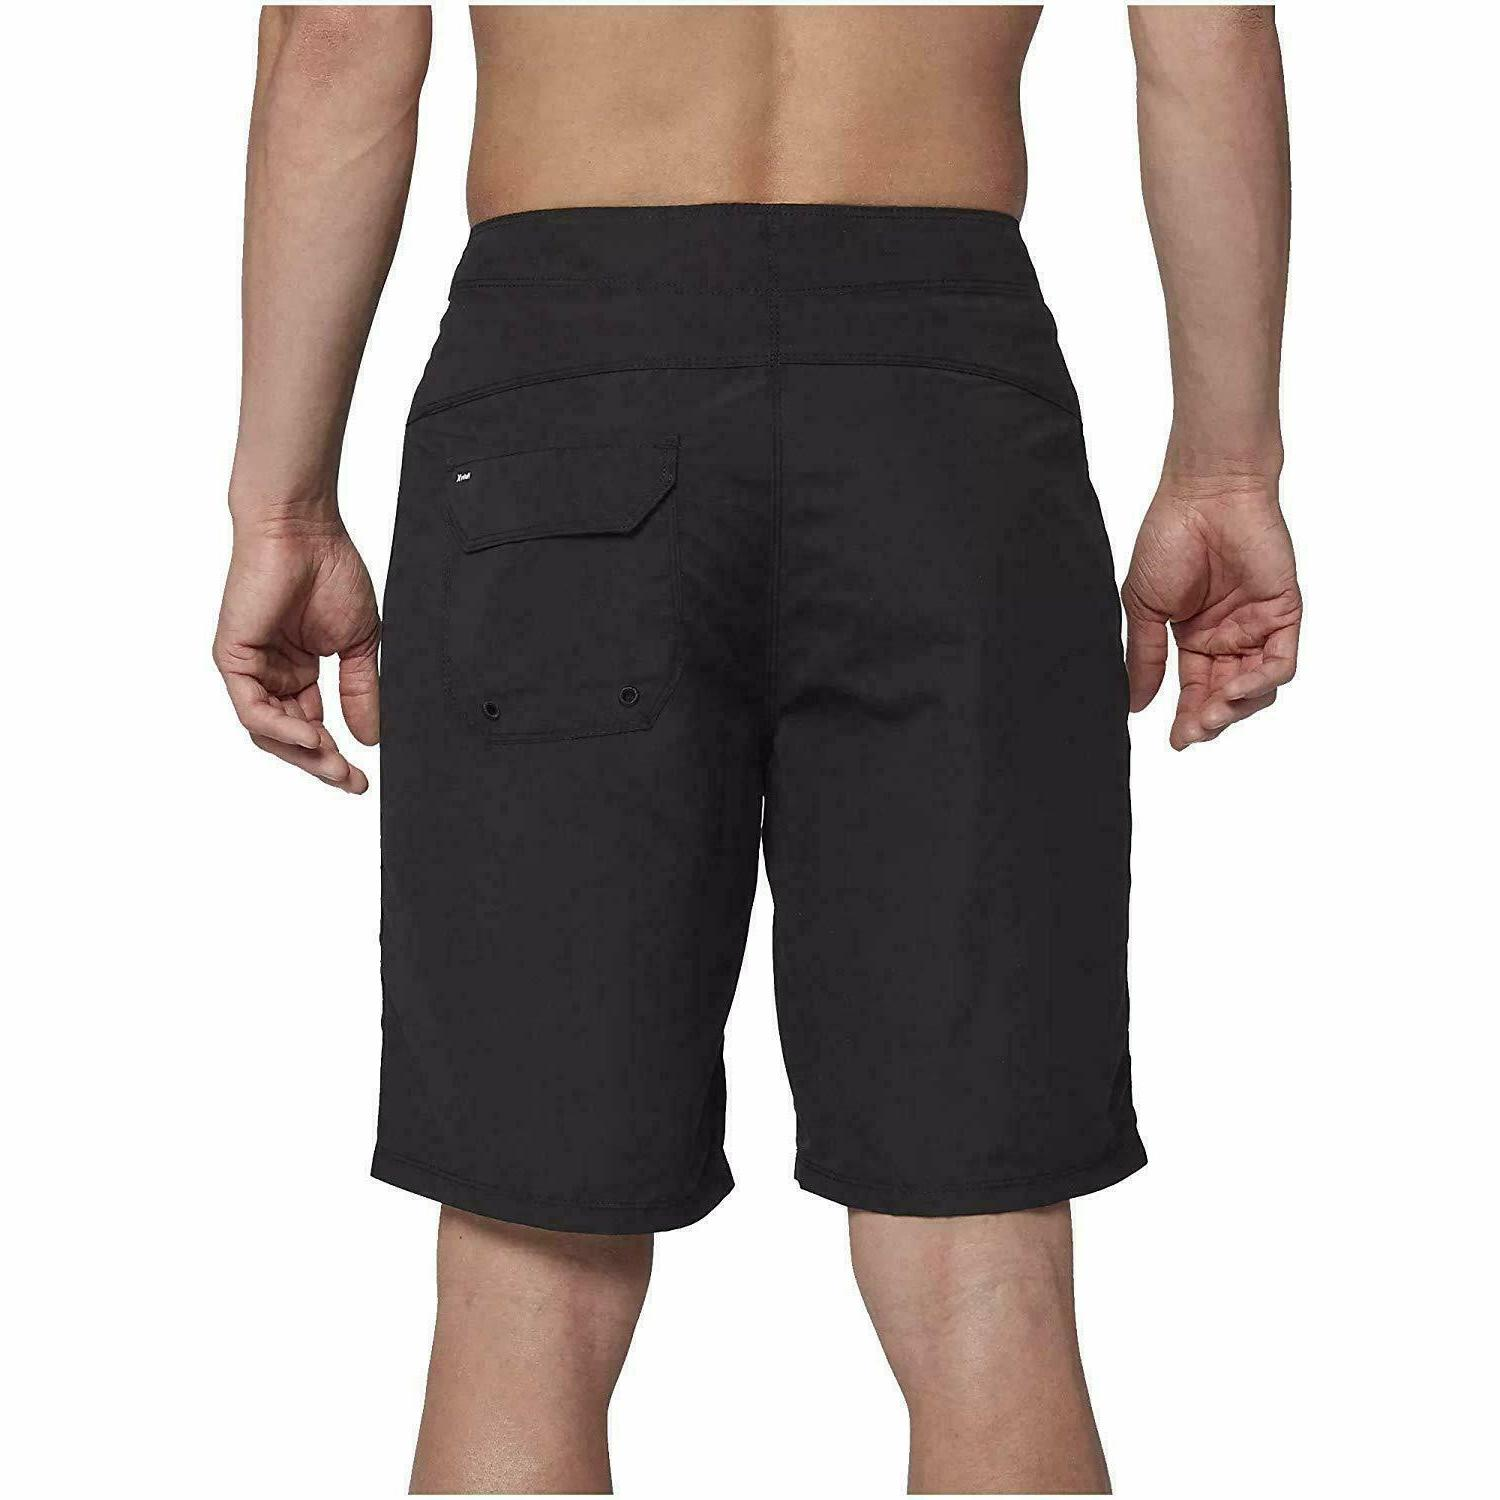 Hurley One 2.0 Supersuede Board Shorts